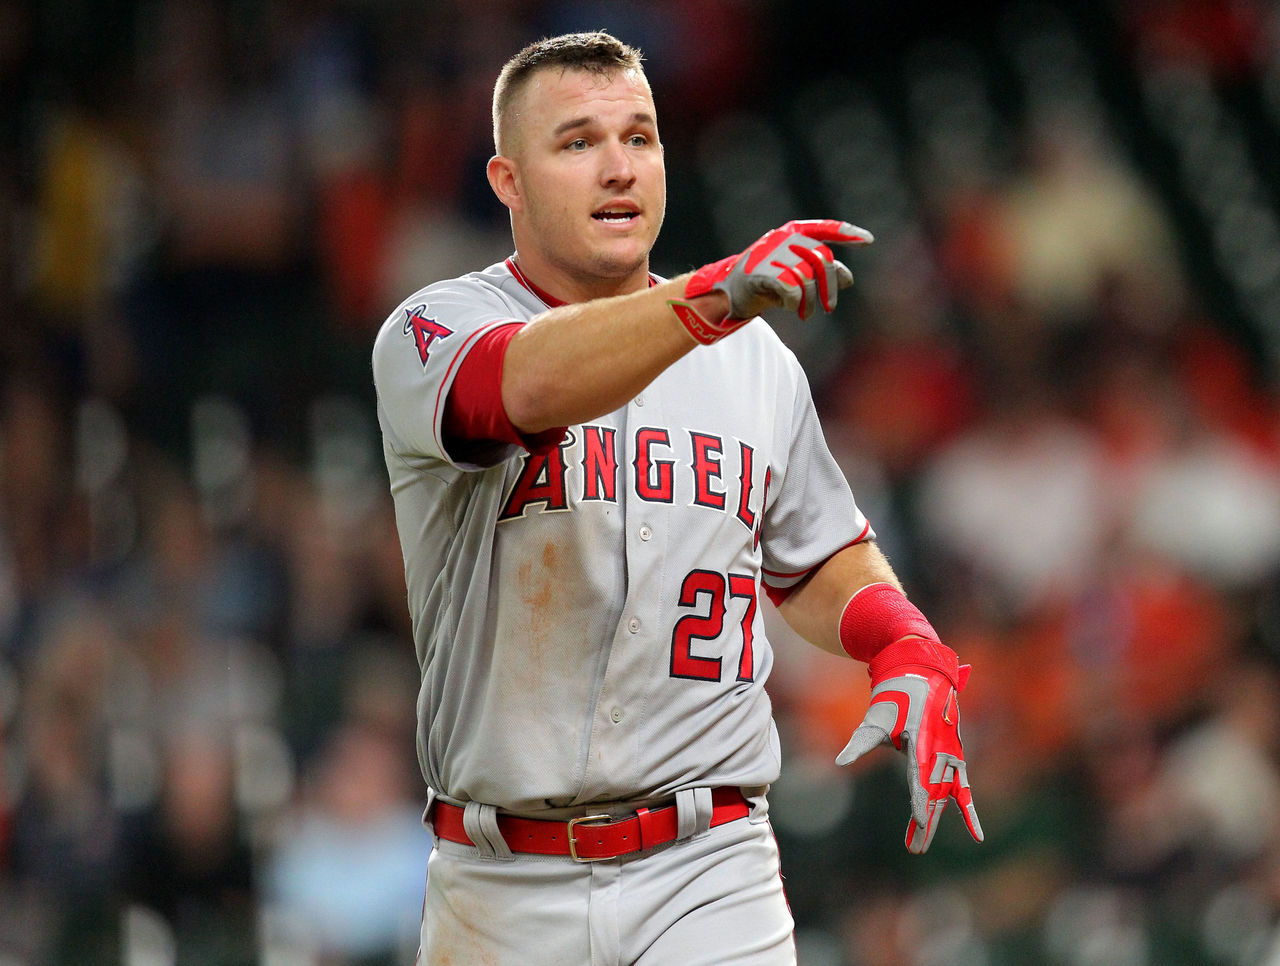 Cropped 2017 04 18t004104z 1244593993 nocid rtrmadp 3 mlb los angeles angels at houston astros